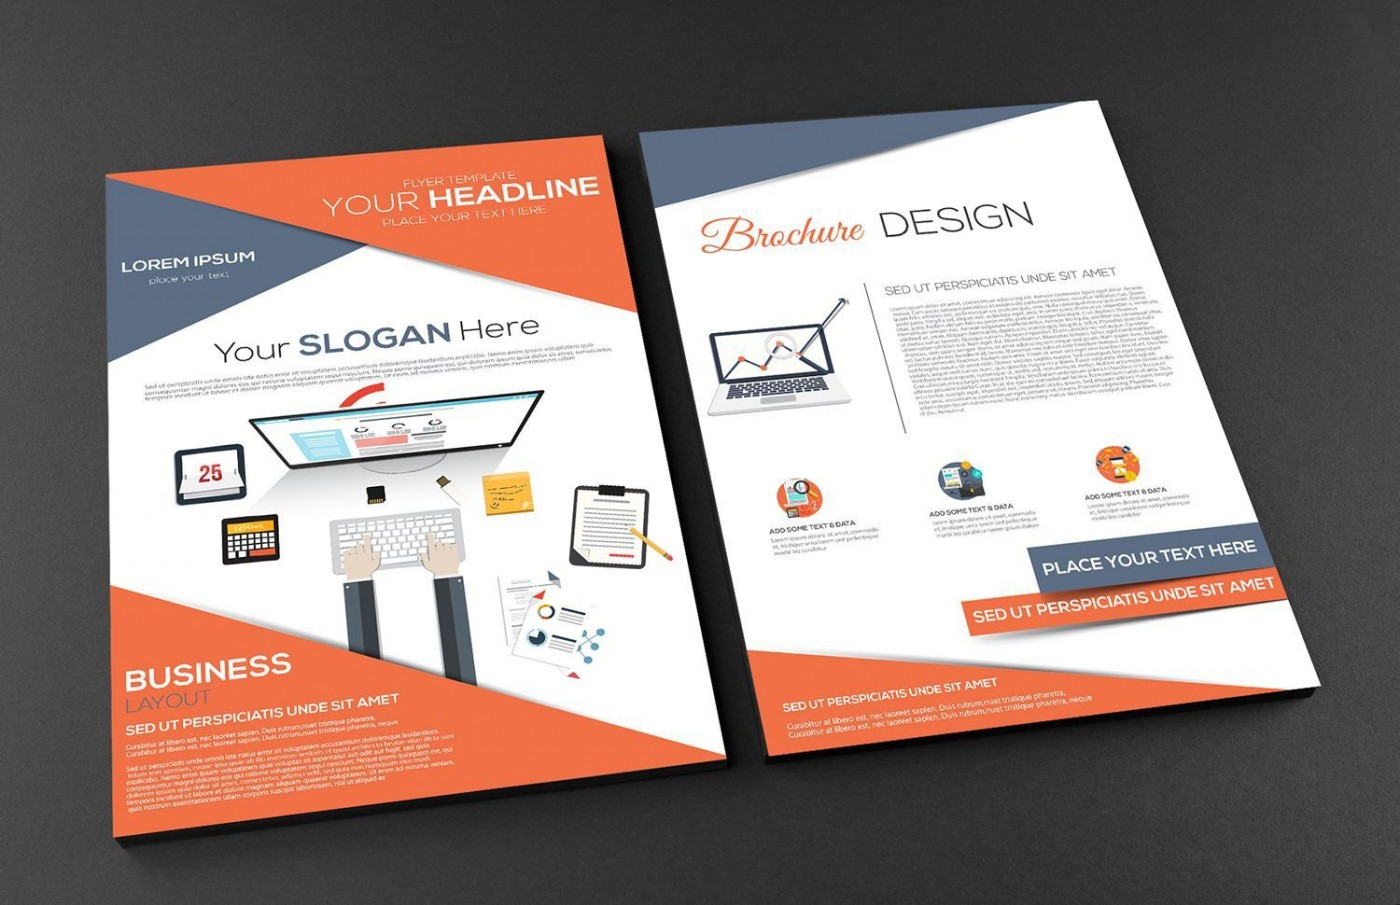 002 Impressive Free Brochure Template Psd File Front And Back Concept 1400